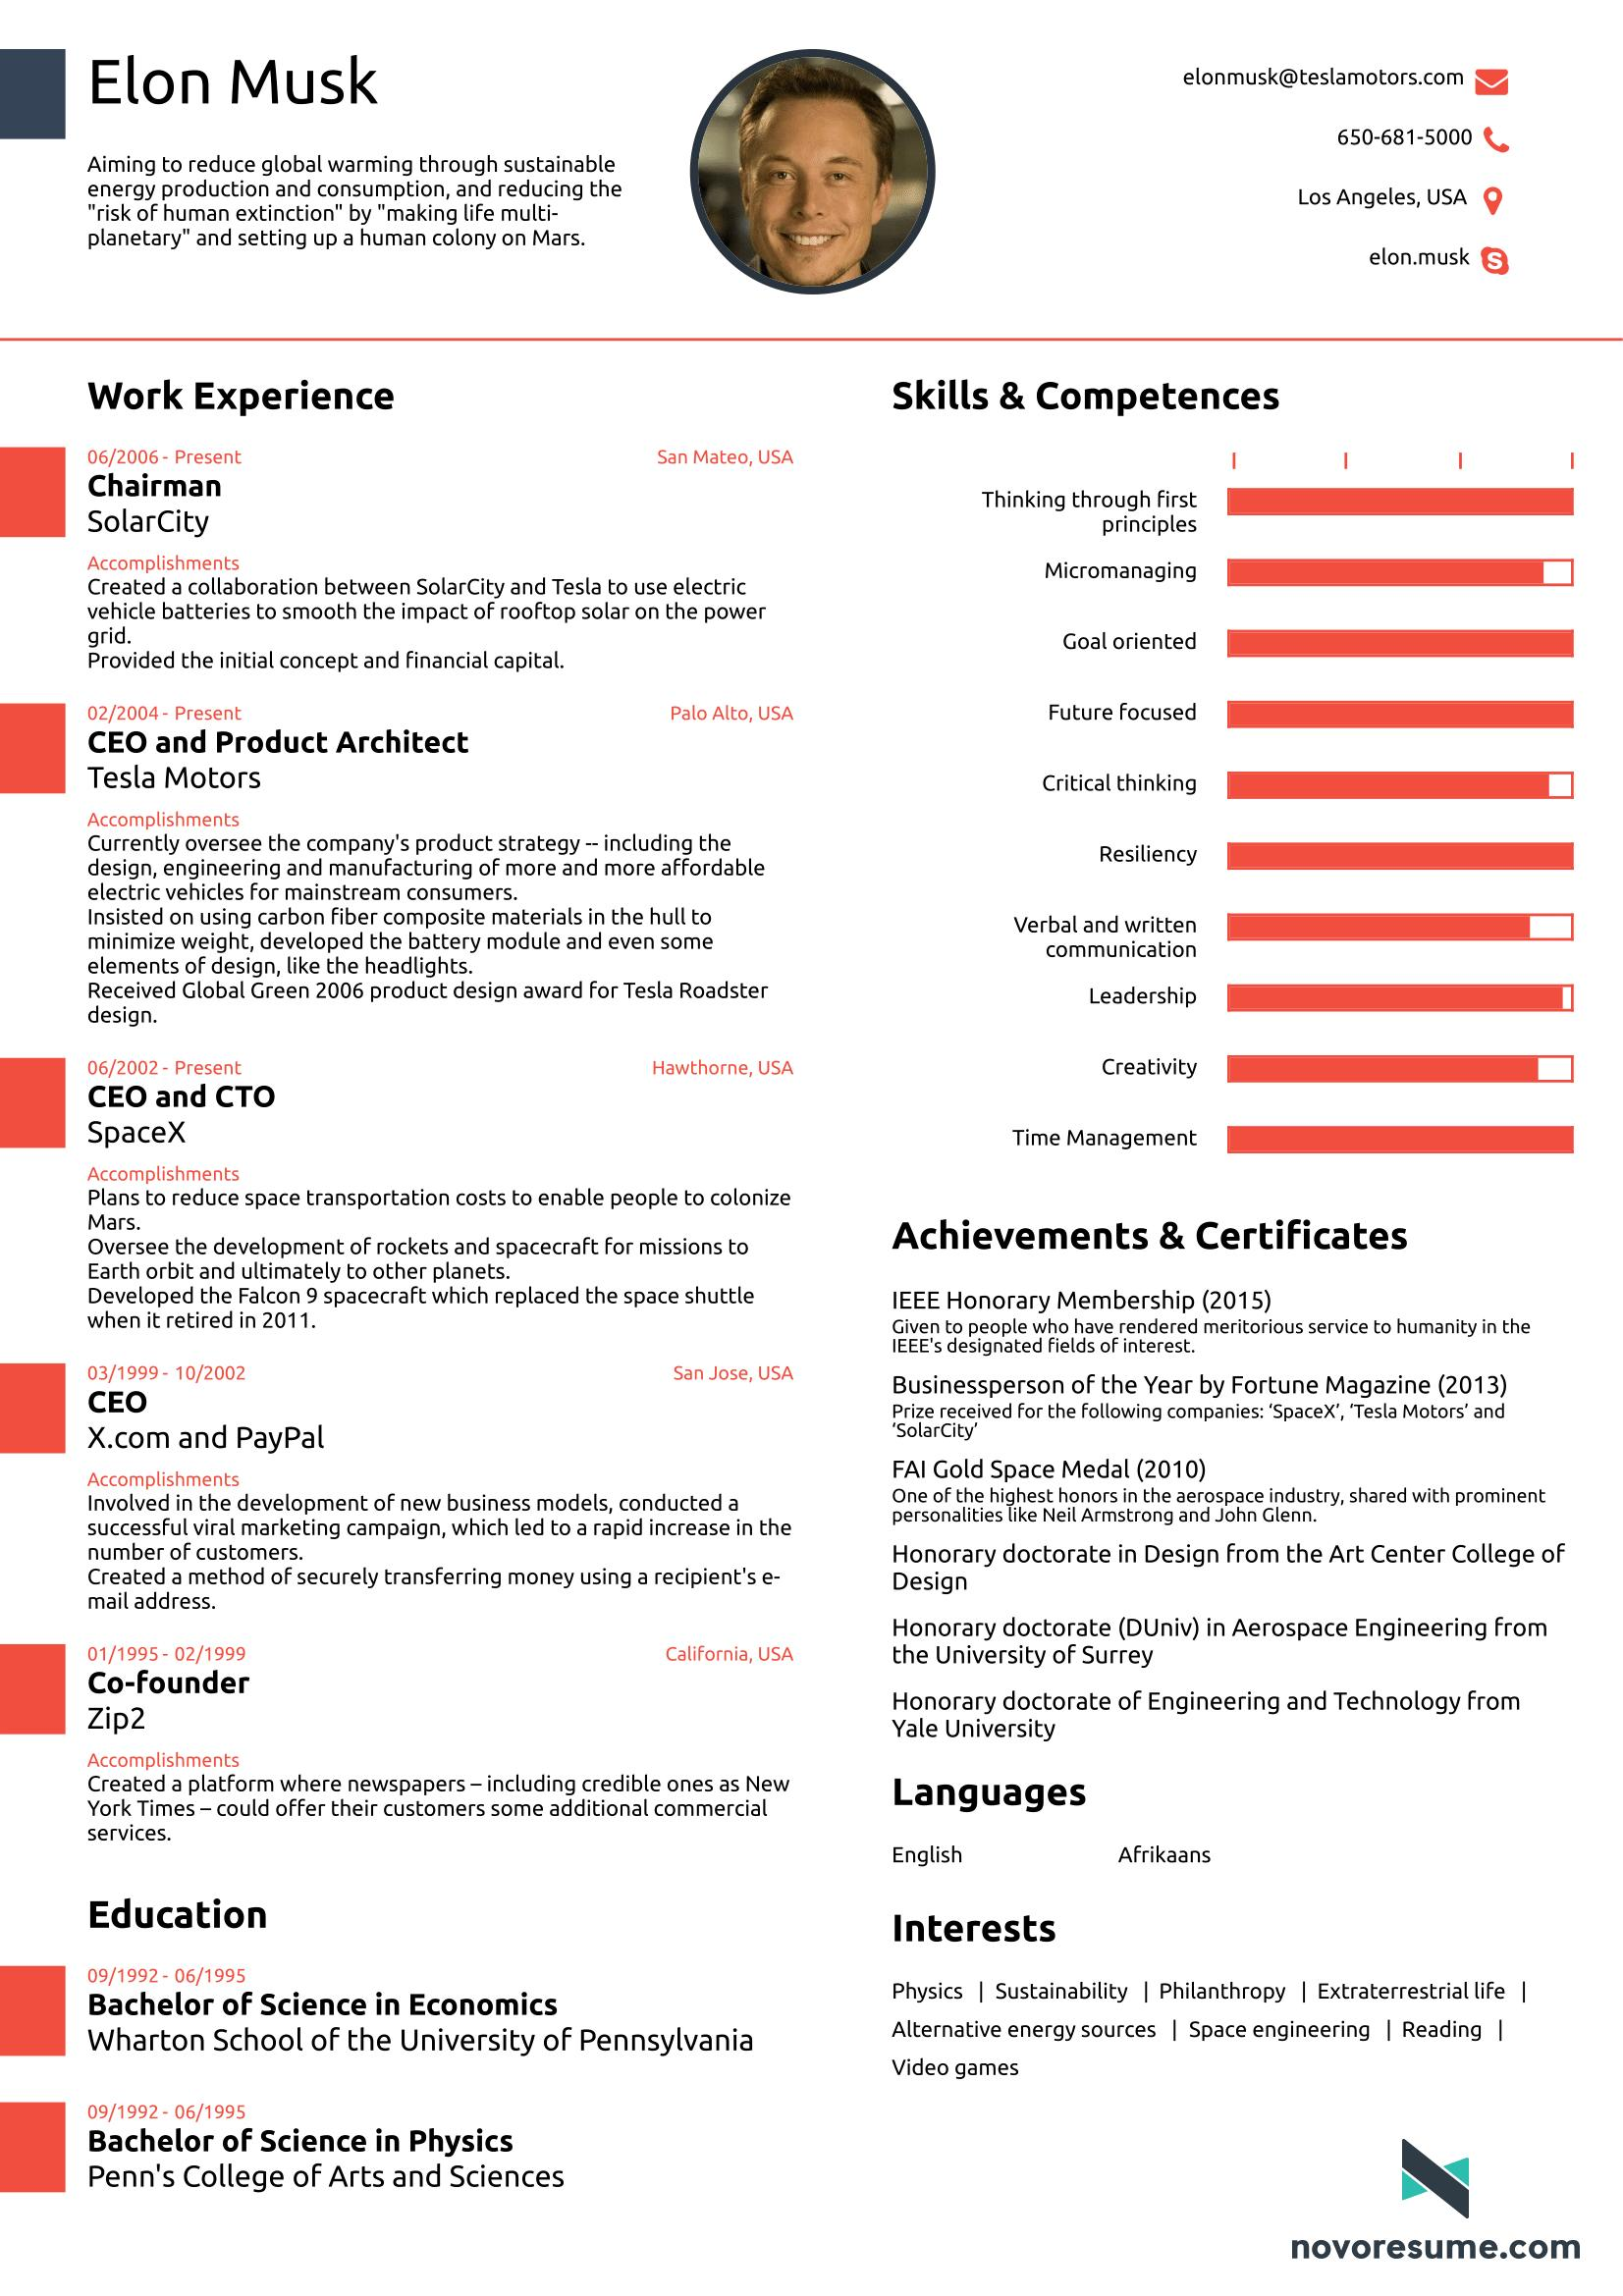 49 Inspirational One Page Resume Site with Gallery